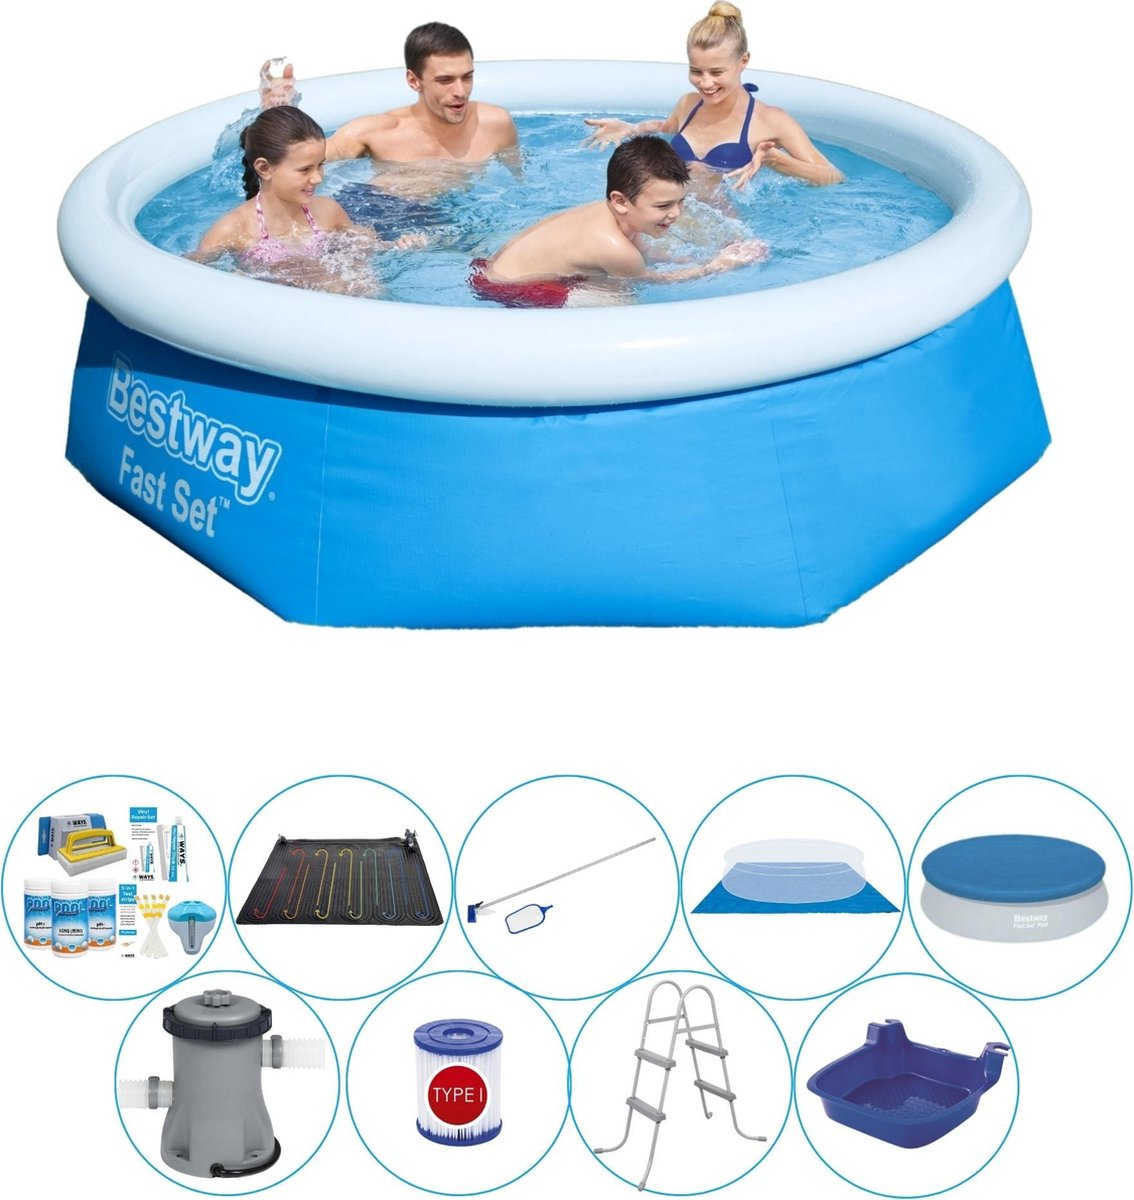 Bestway Fast Set Rond 244x66 cm - Slimme Zwembad Deal